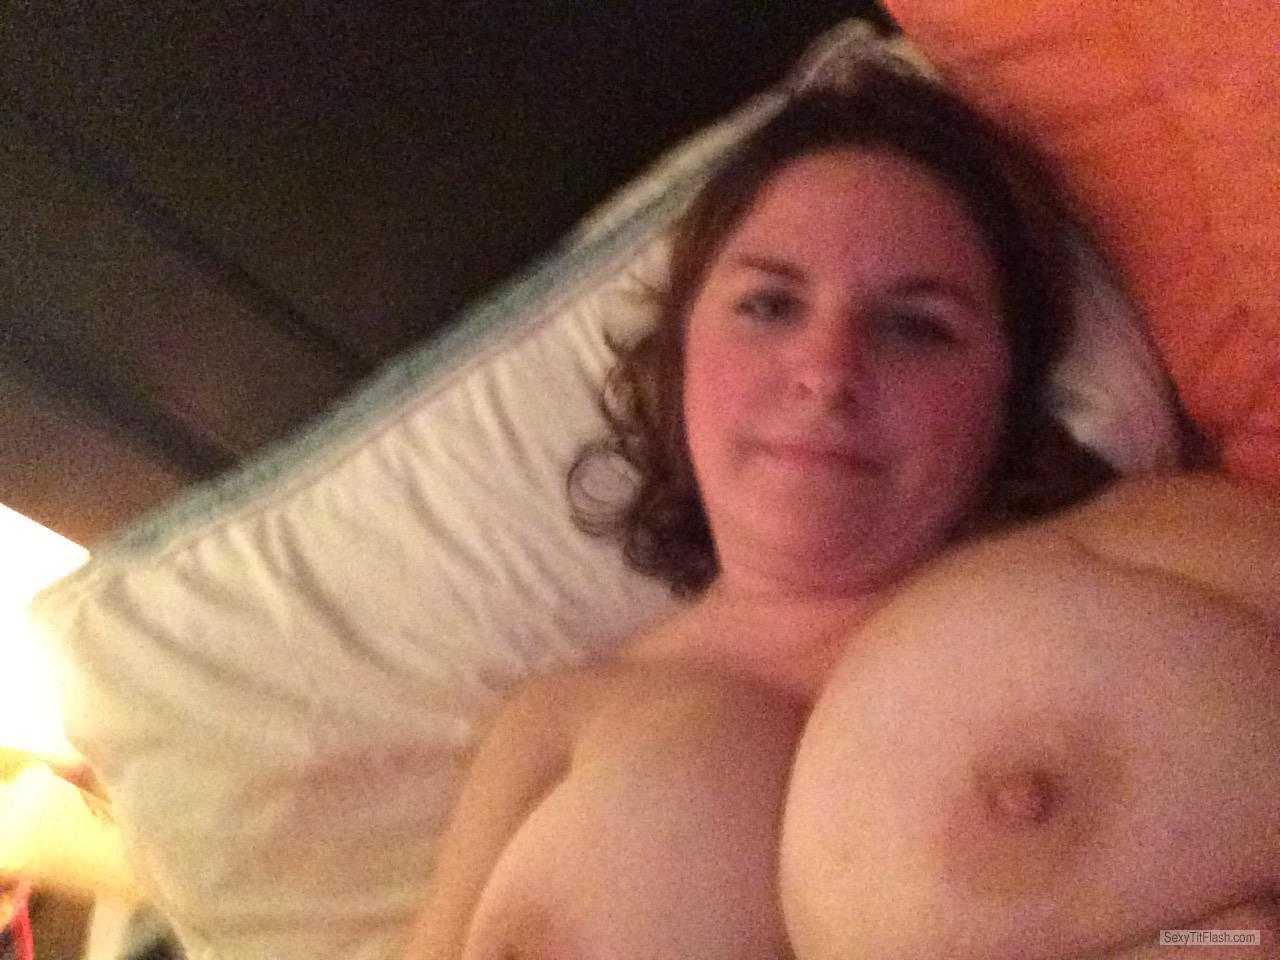 Tit Flash: Wife's Very Big Tits (Selfie) - Topless Bombs from United States